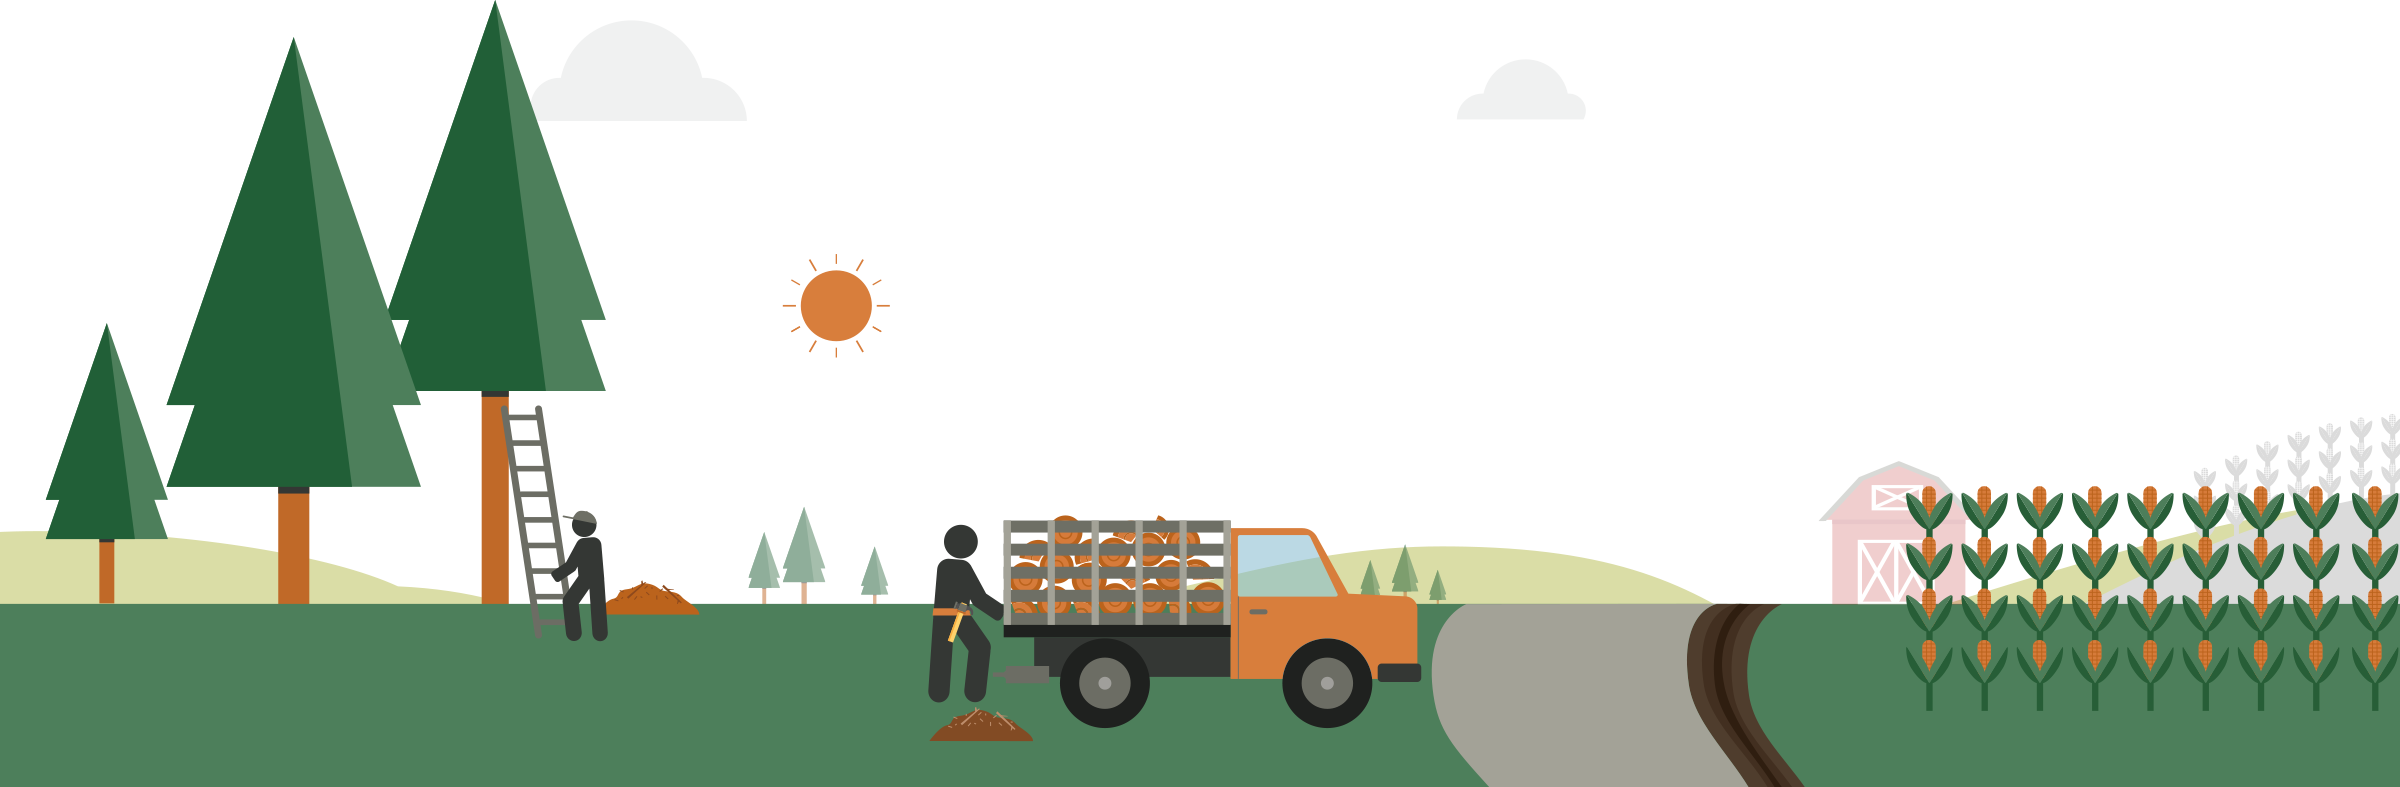 Creating Defensible Space Illustration